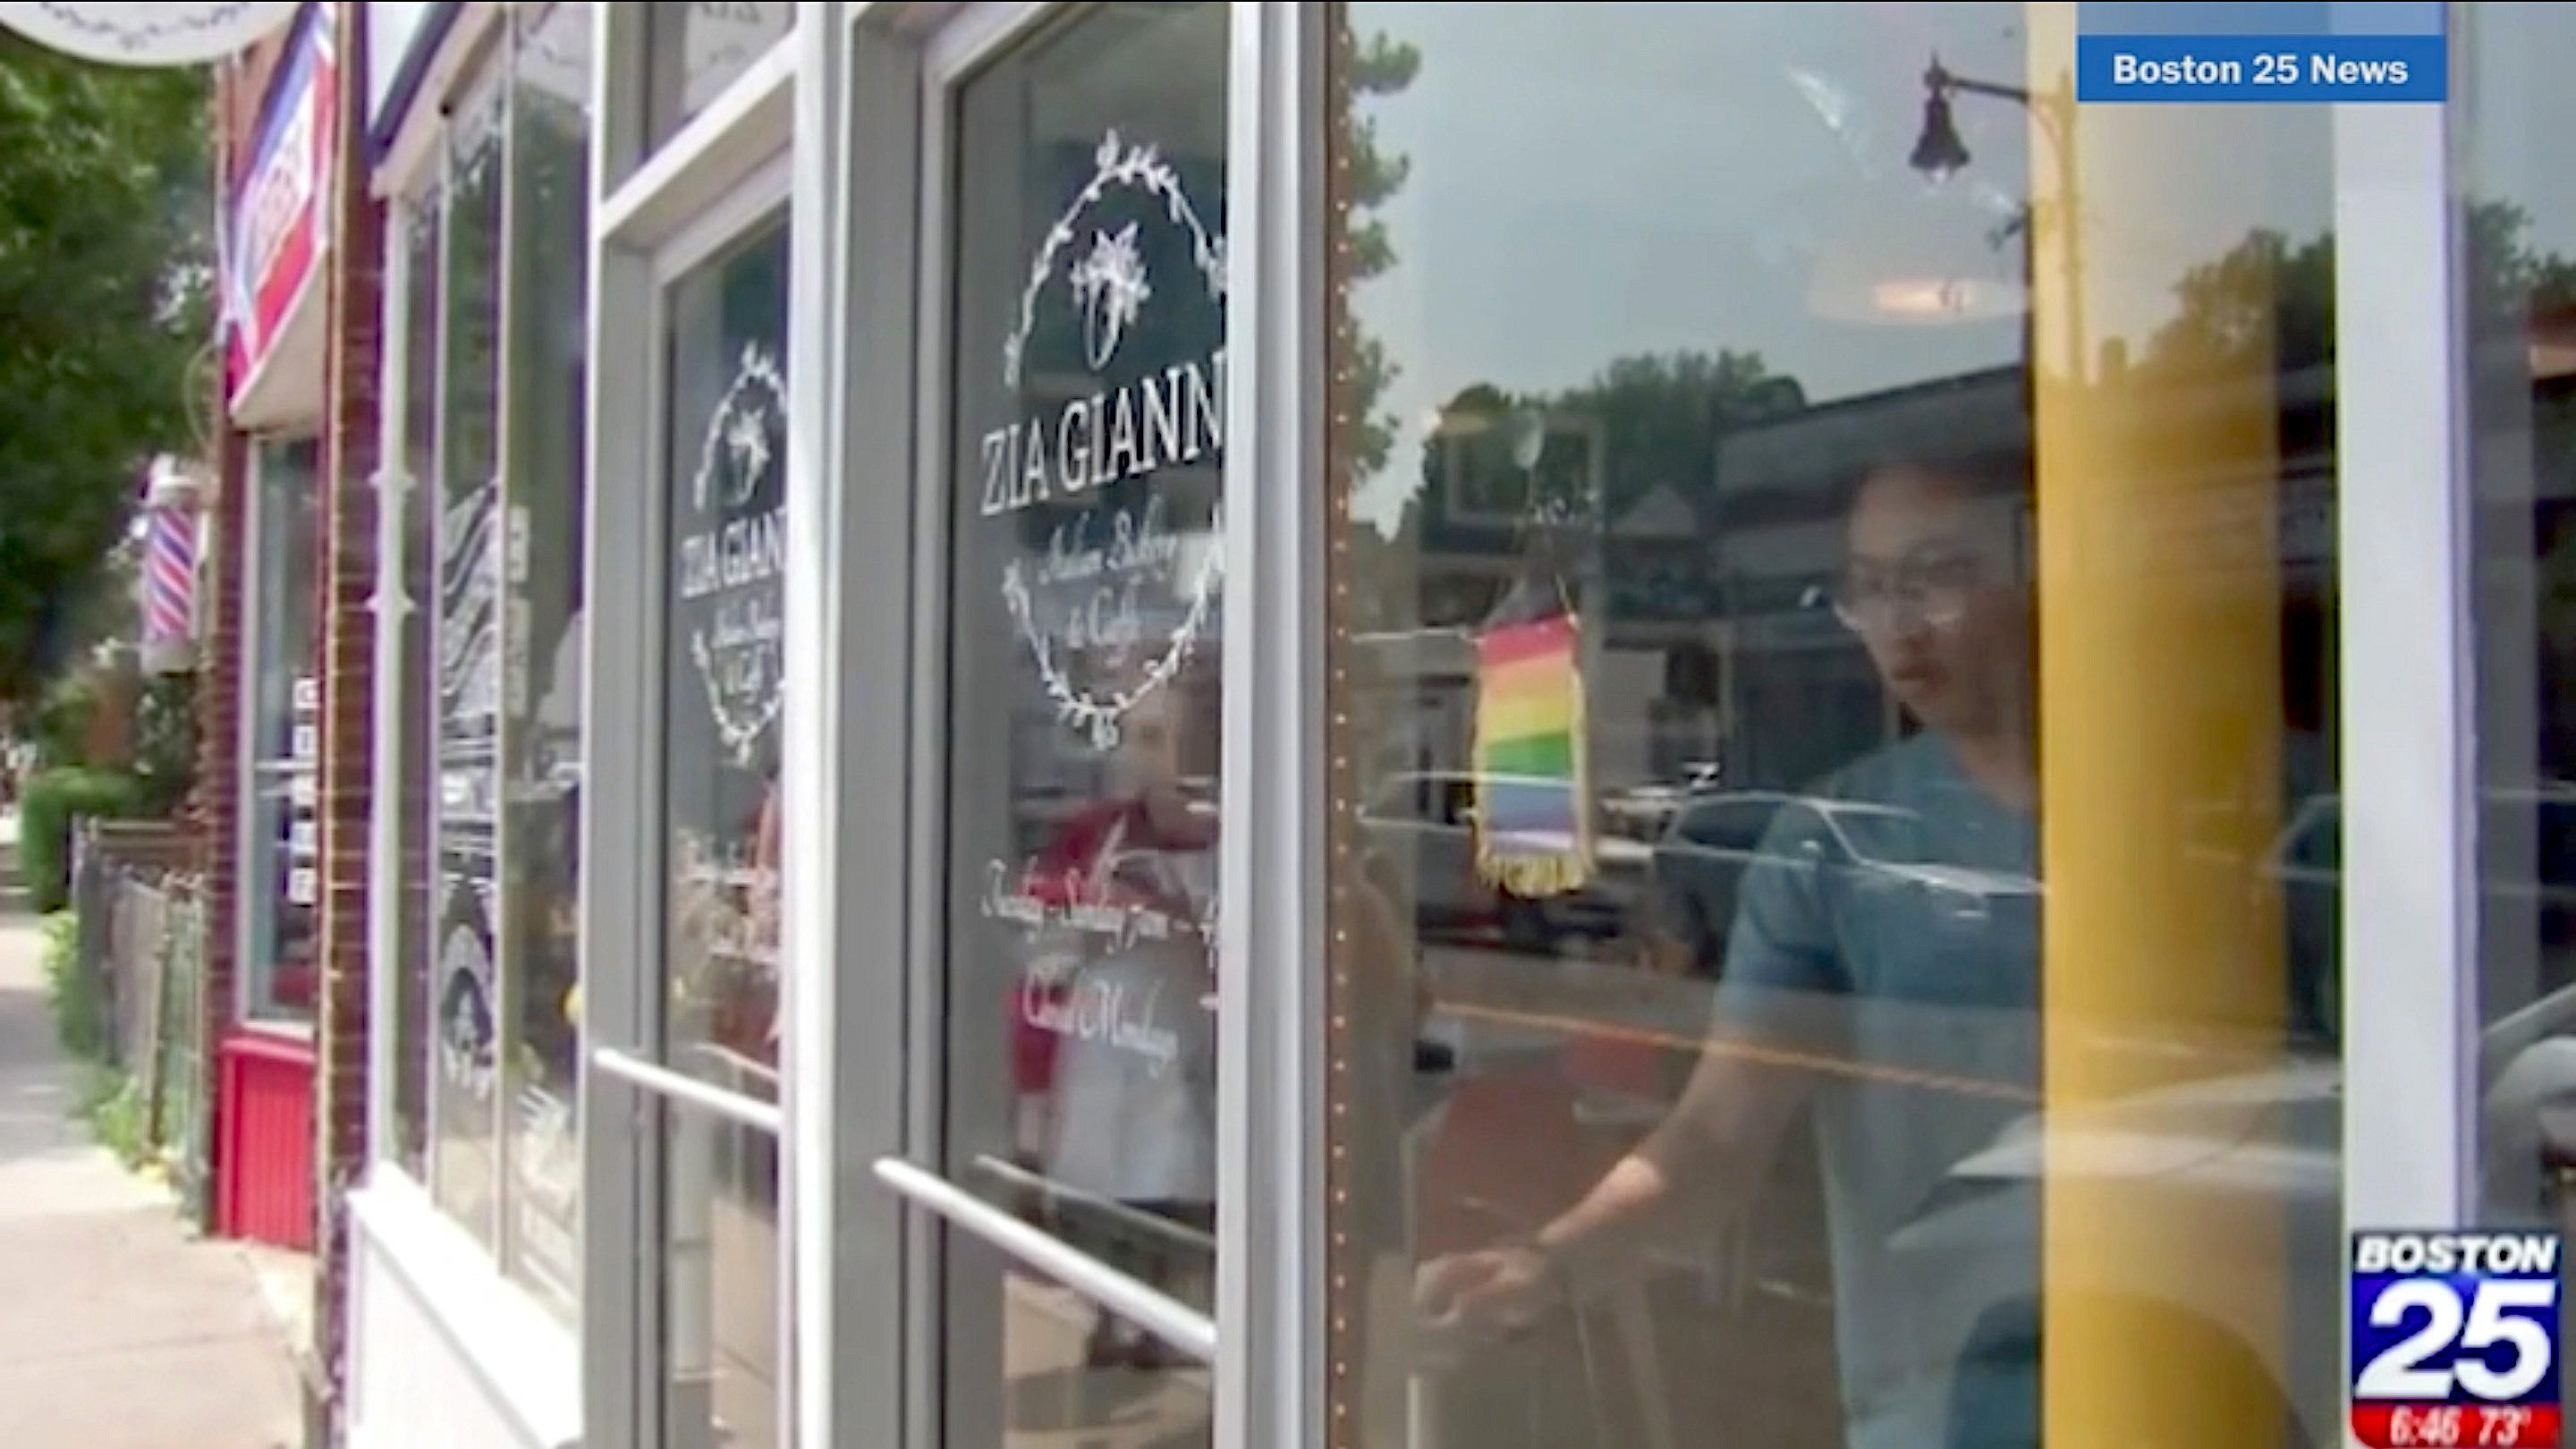 The restaurant Zia Gianna was criticized on Yelp for hanging a small gay pride flag in its window